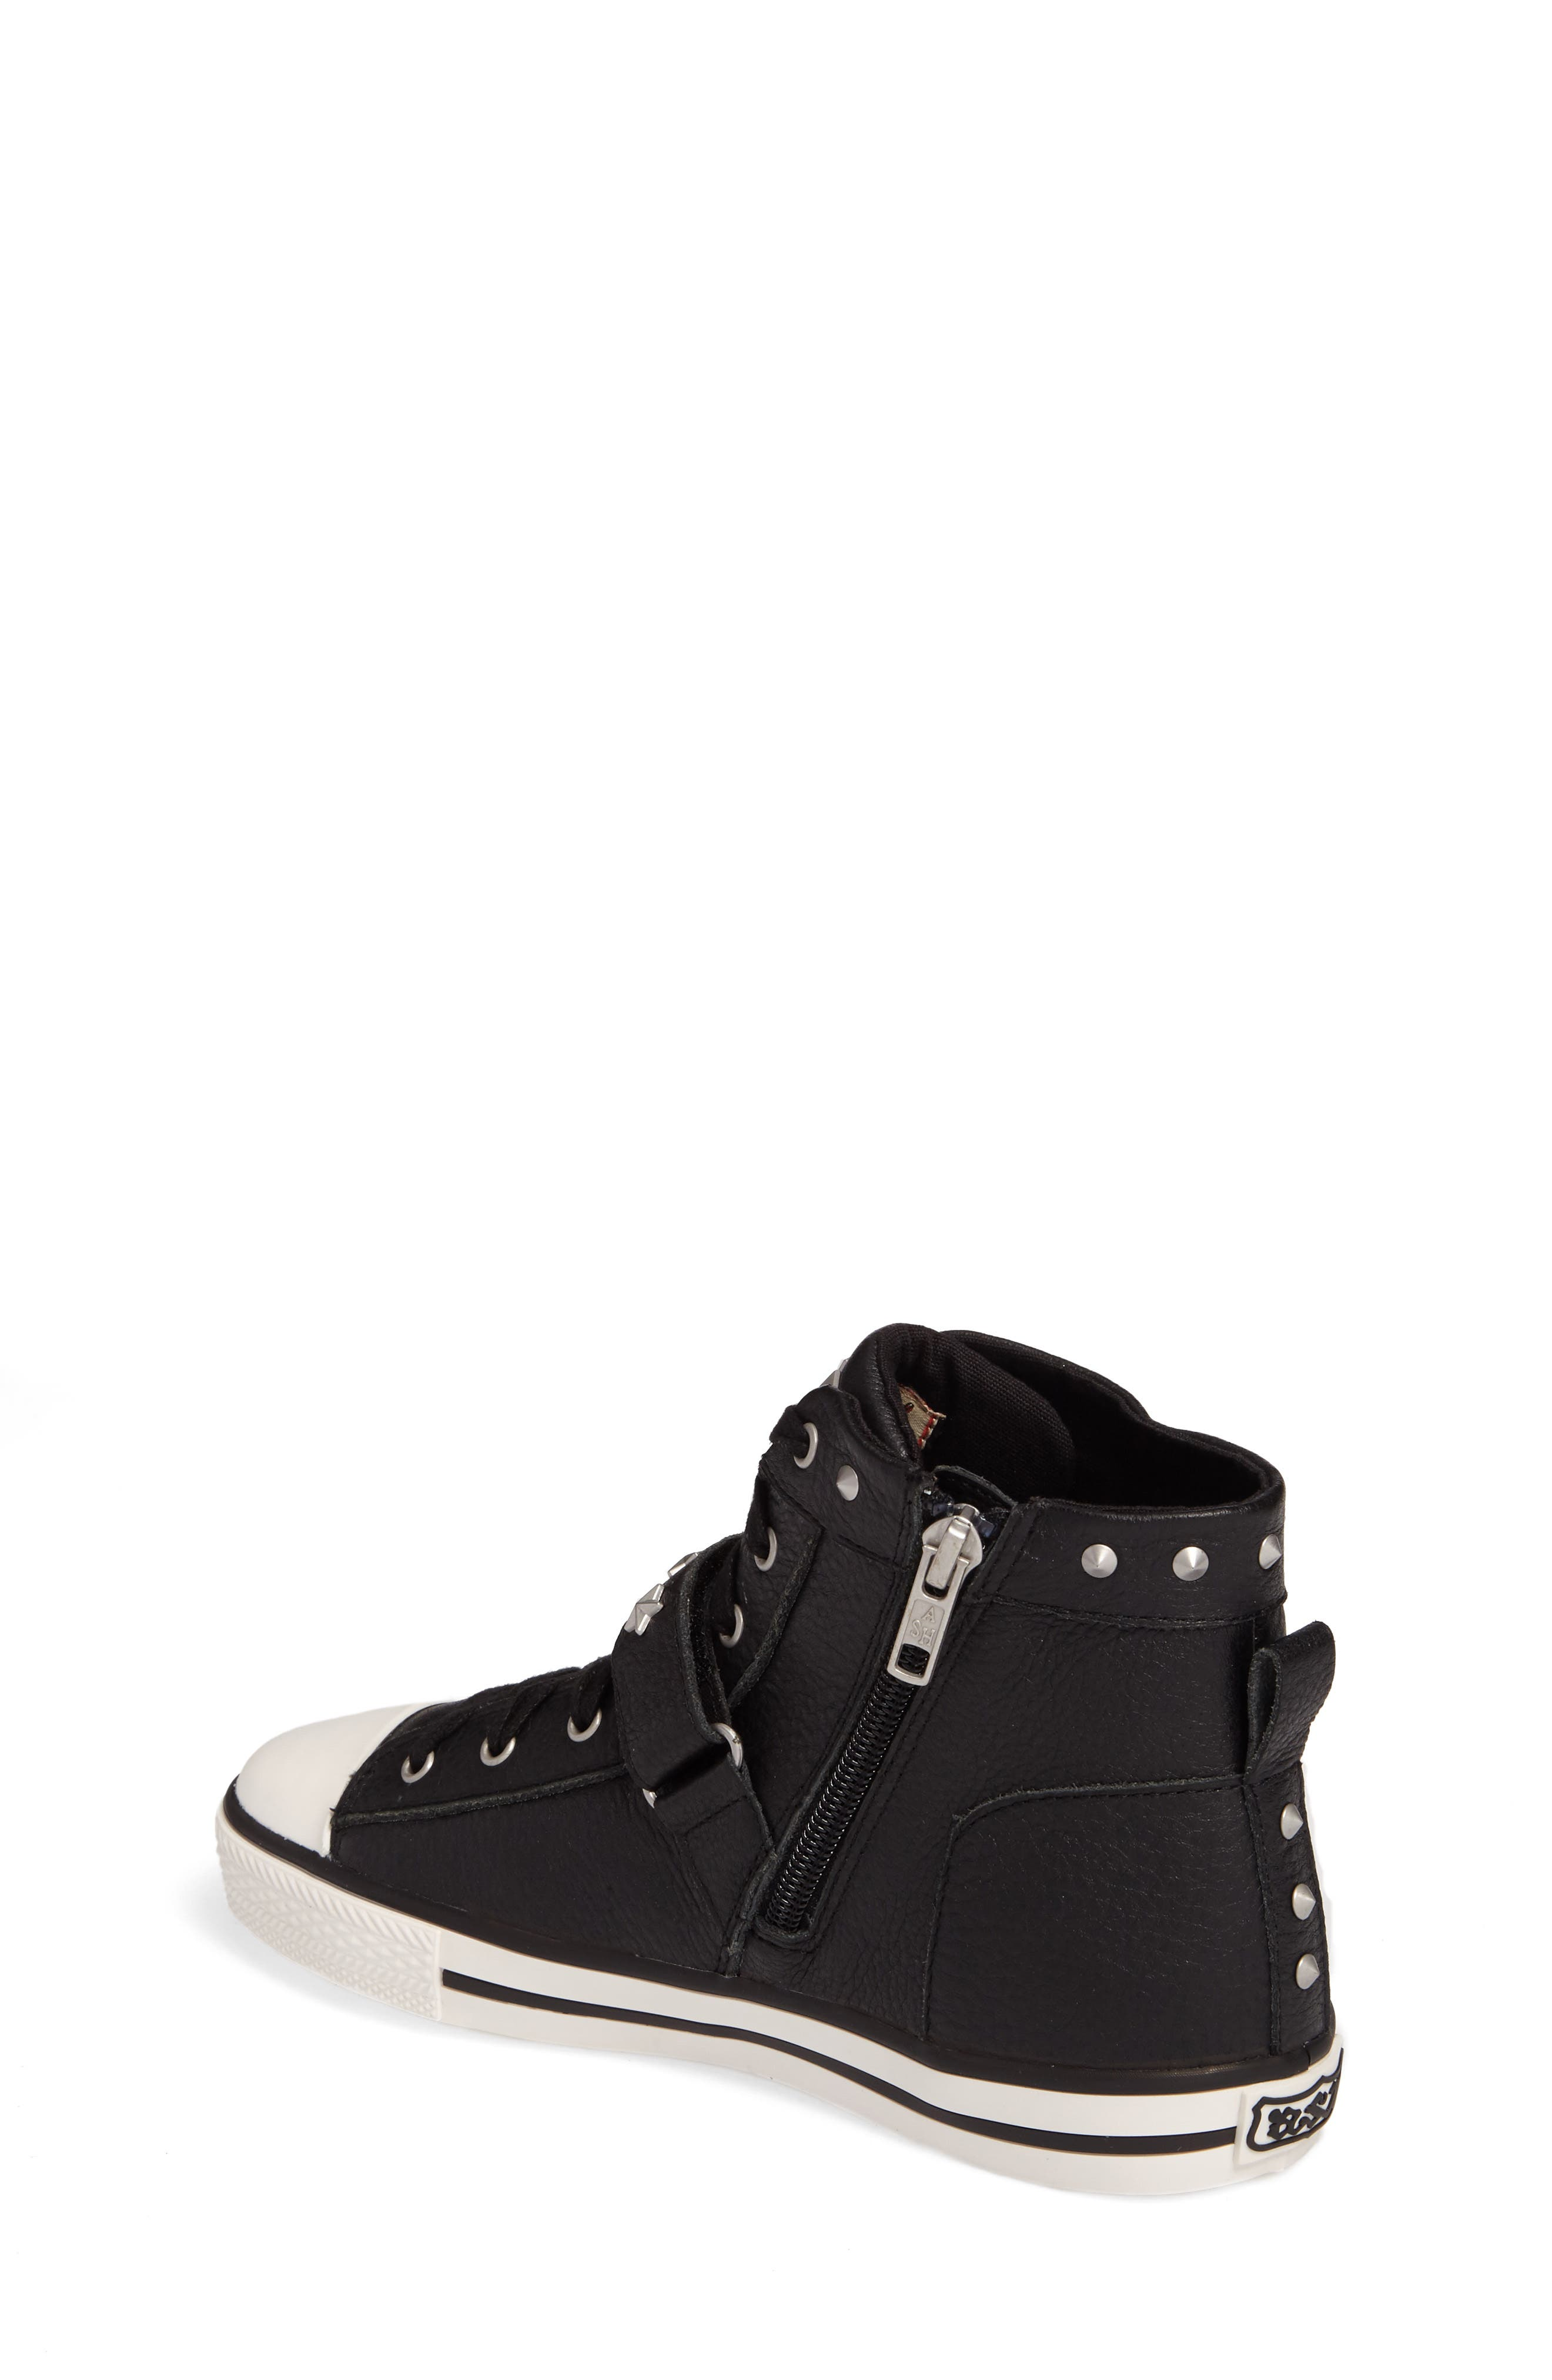 Vava Curve Studded High Top Sneaker,                             Alternate thumbnail 2, color,                             Black Leather